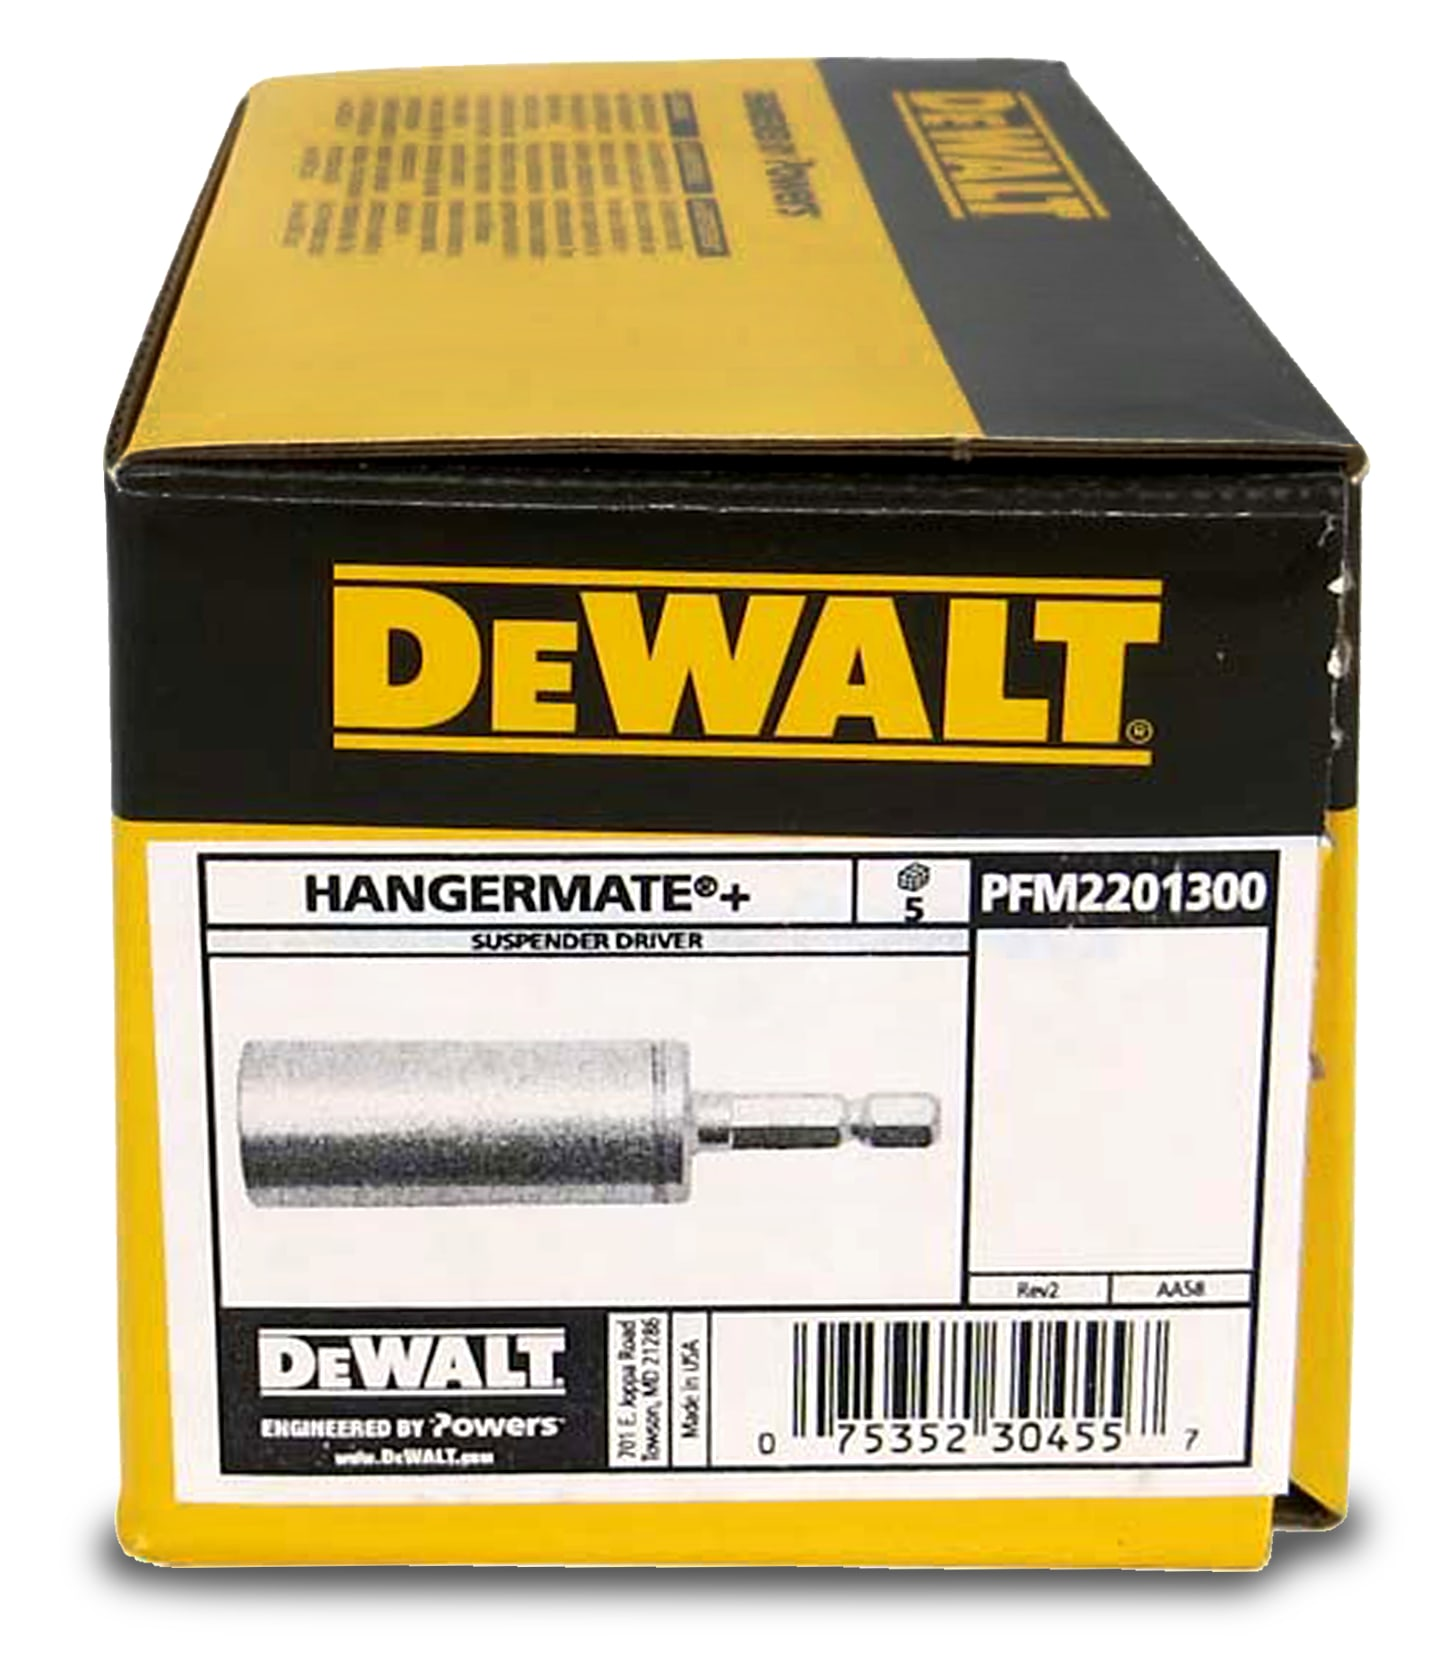 A fluted folding carton of black decker and dewalt